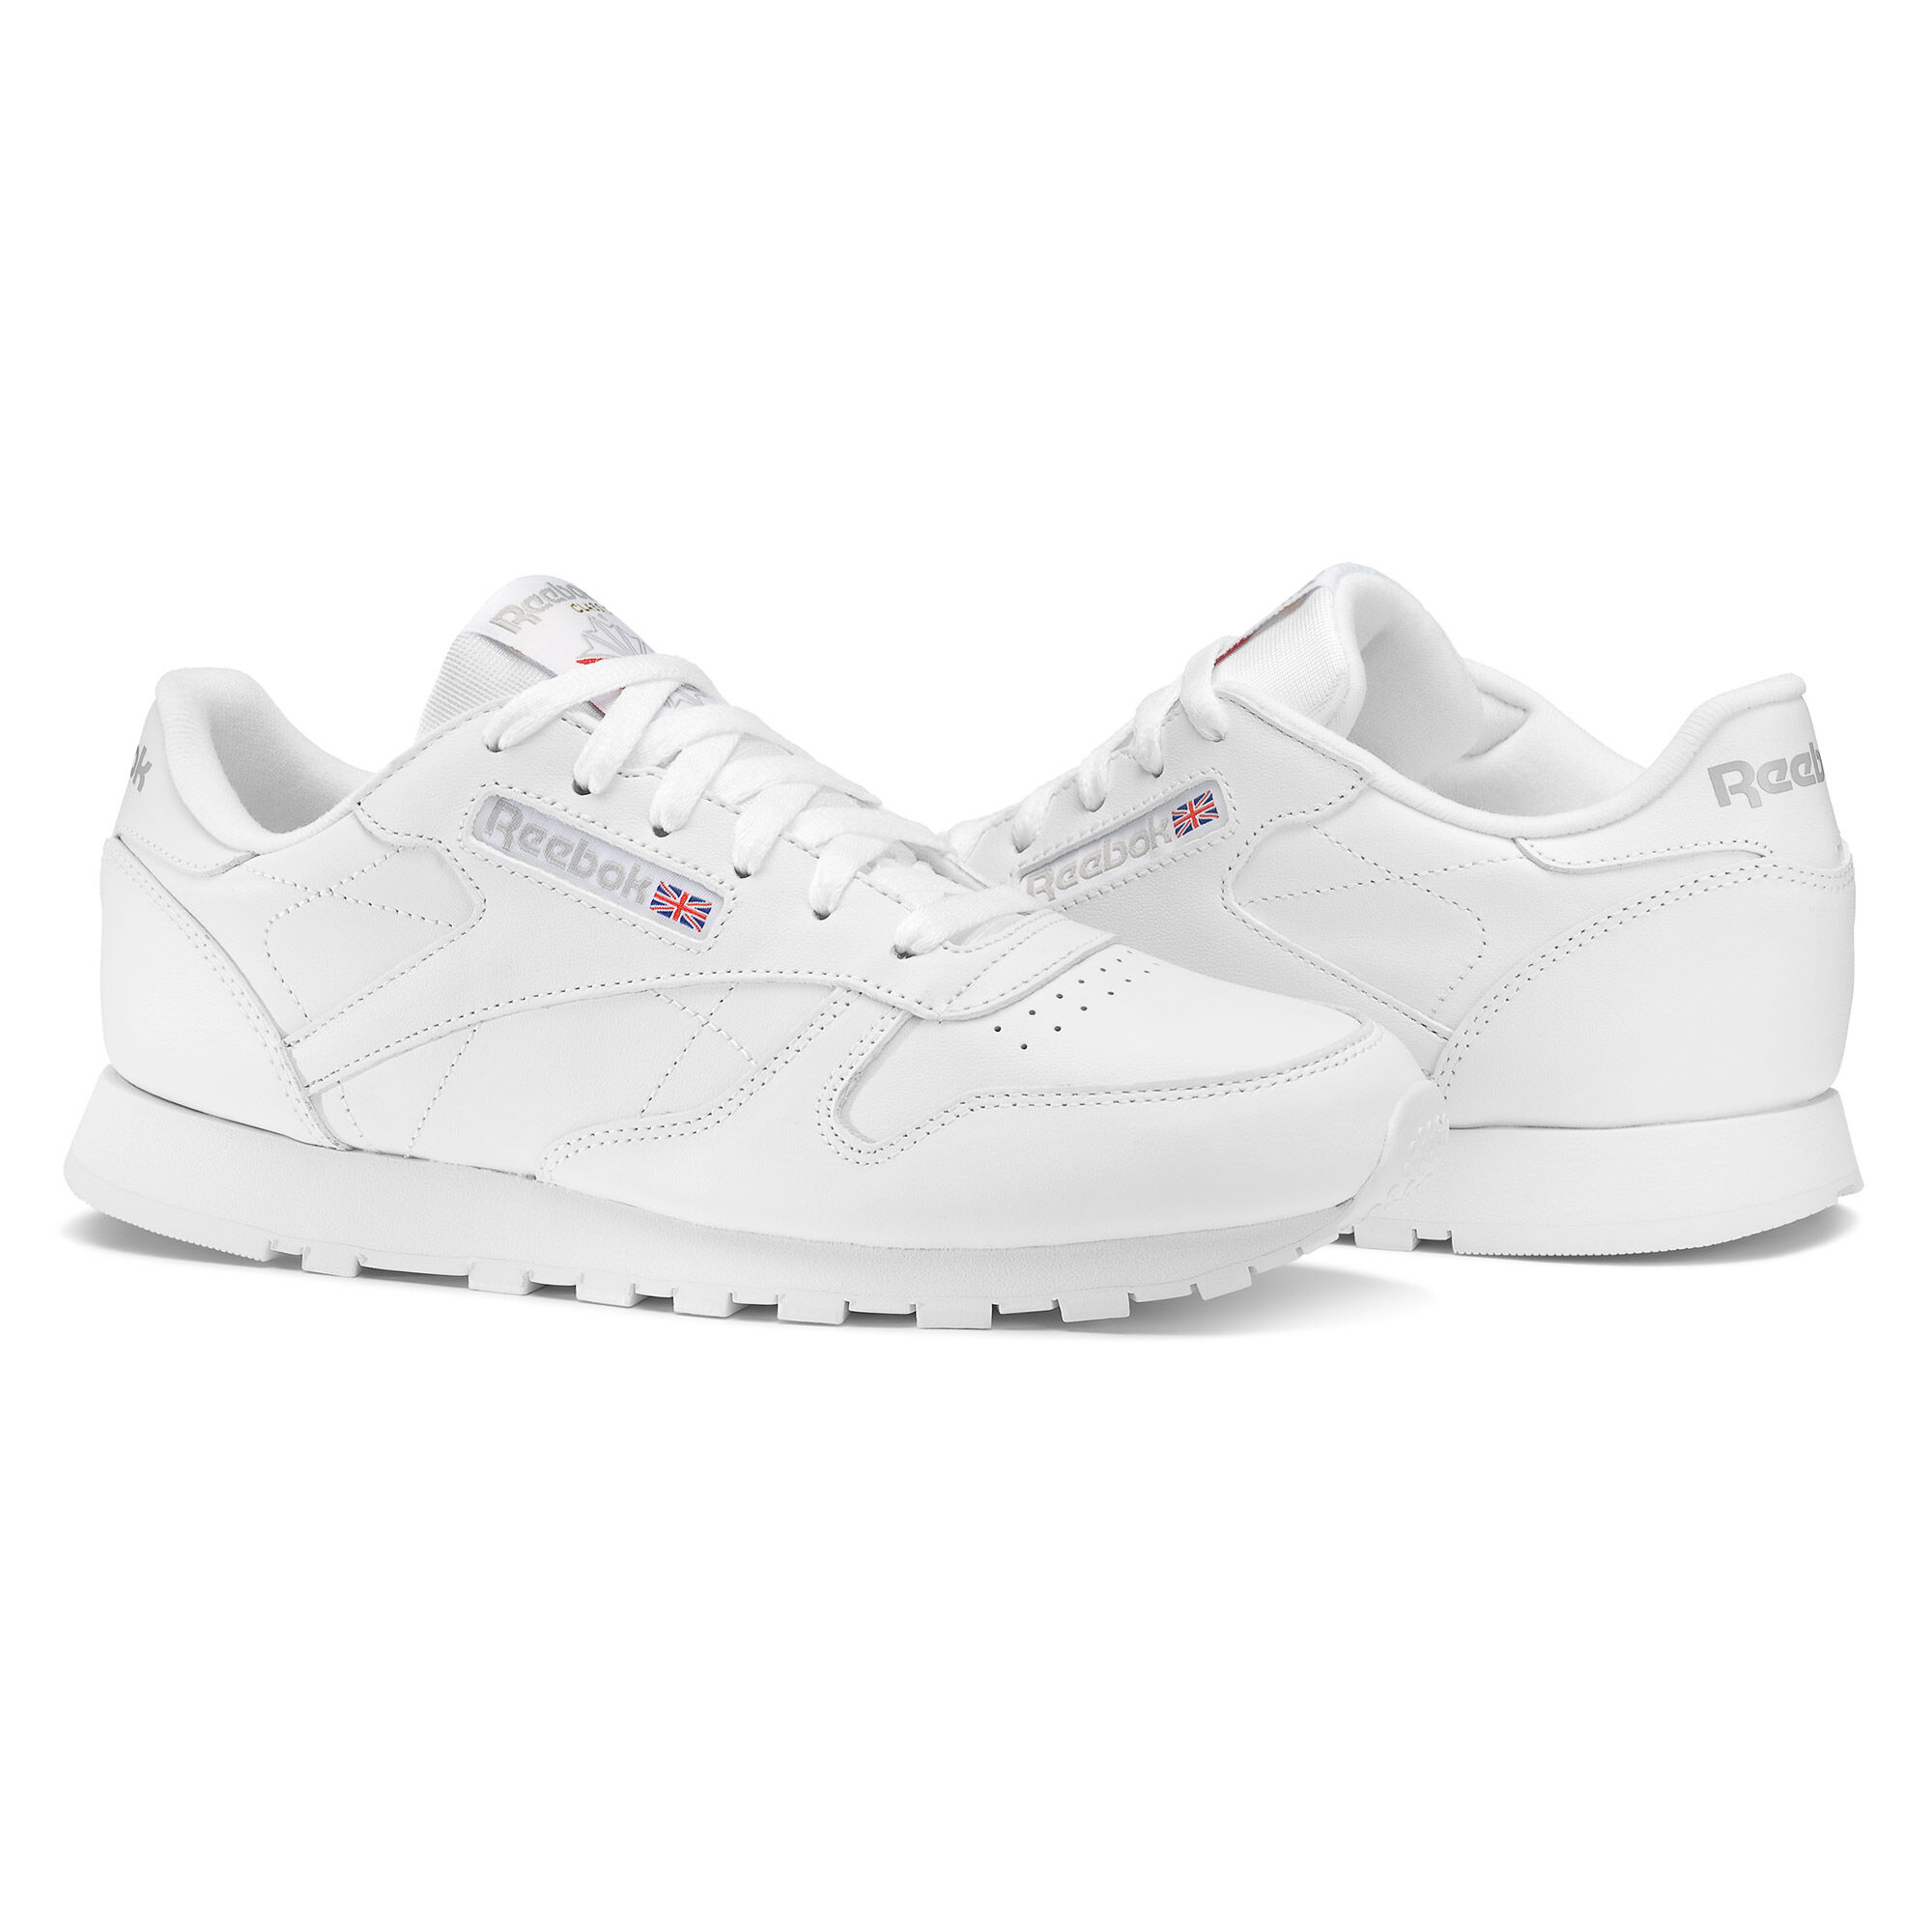 Reebok - Classic Leather White 2232